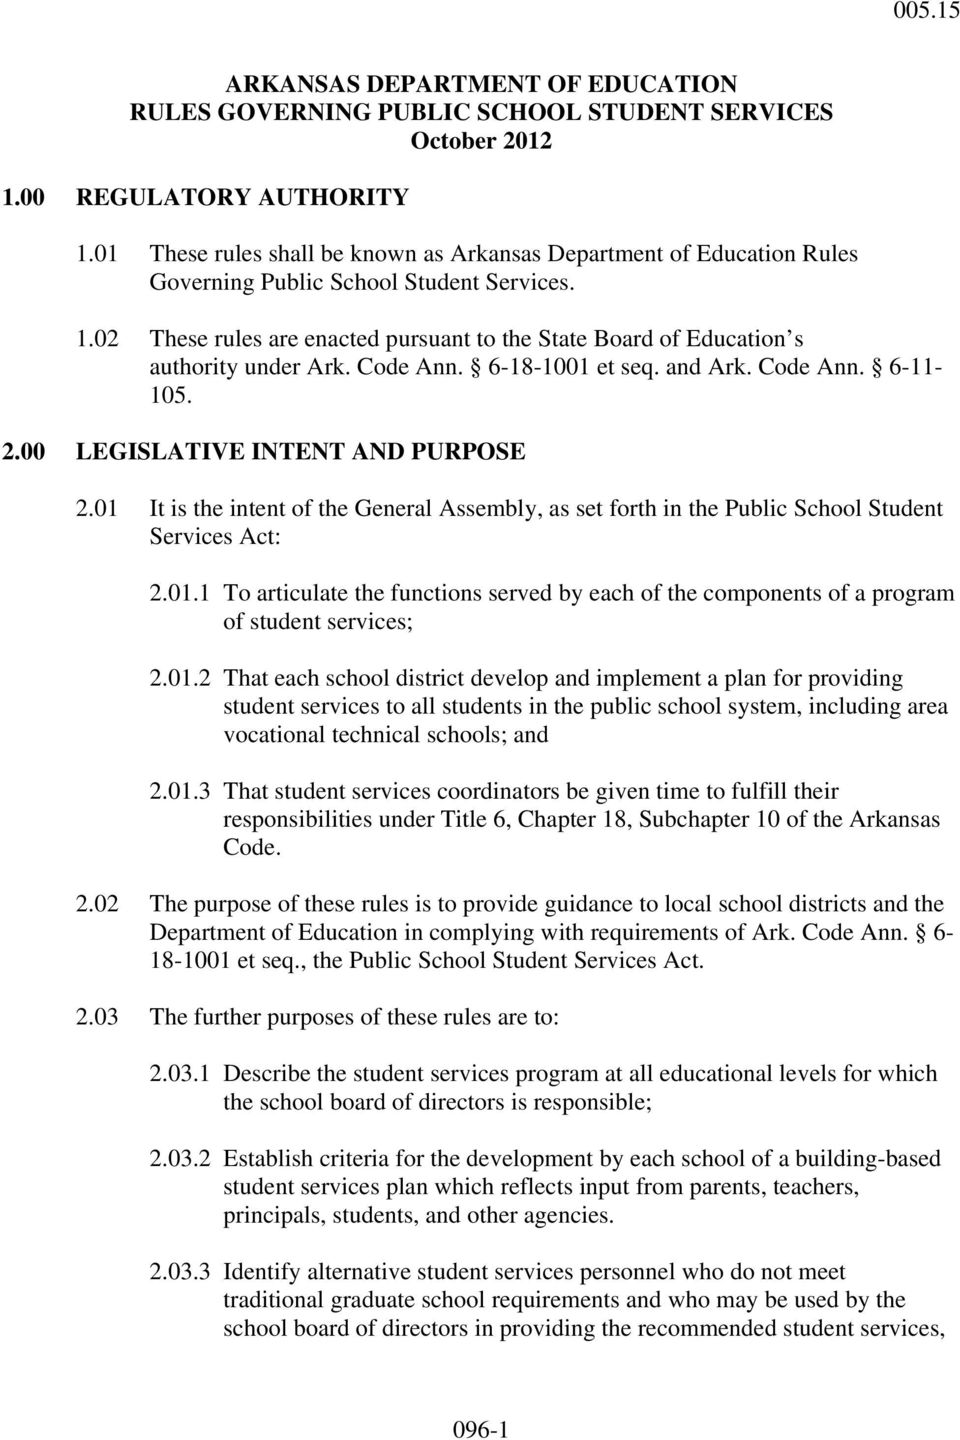 02 These rules are enacted pursuant to the State Board of Education s authority under Ark. Code Ann. 6-18-1001 et seq. and Ark. Code Ann. 6-11- 105. 2.00 LEGISLATIVE INTENT AND PURPOSE 2.